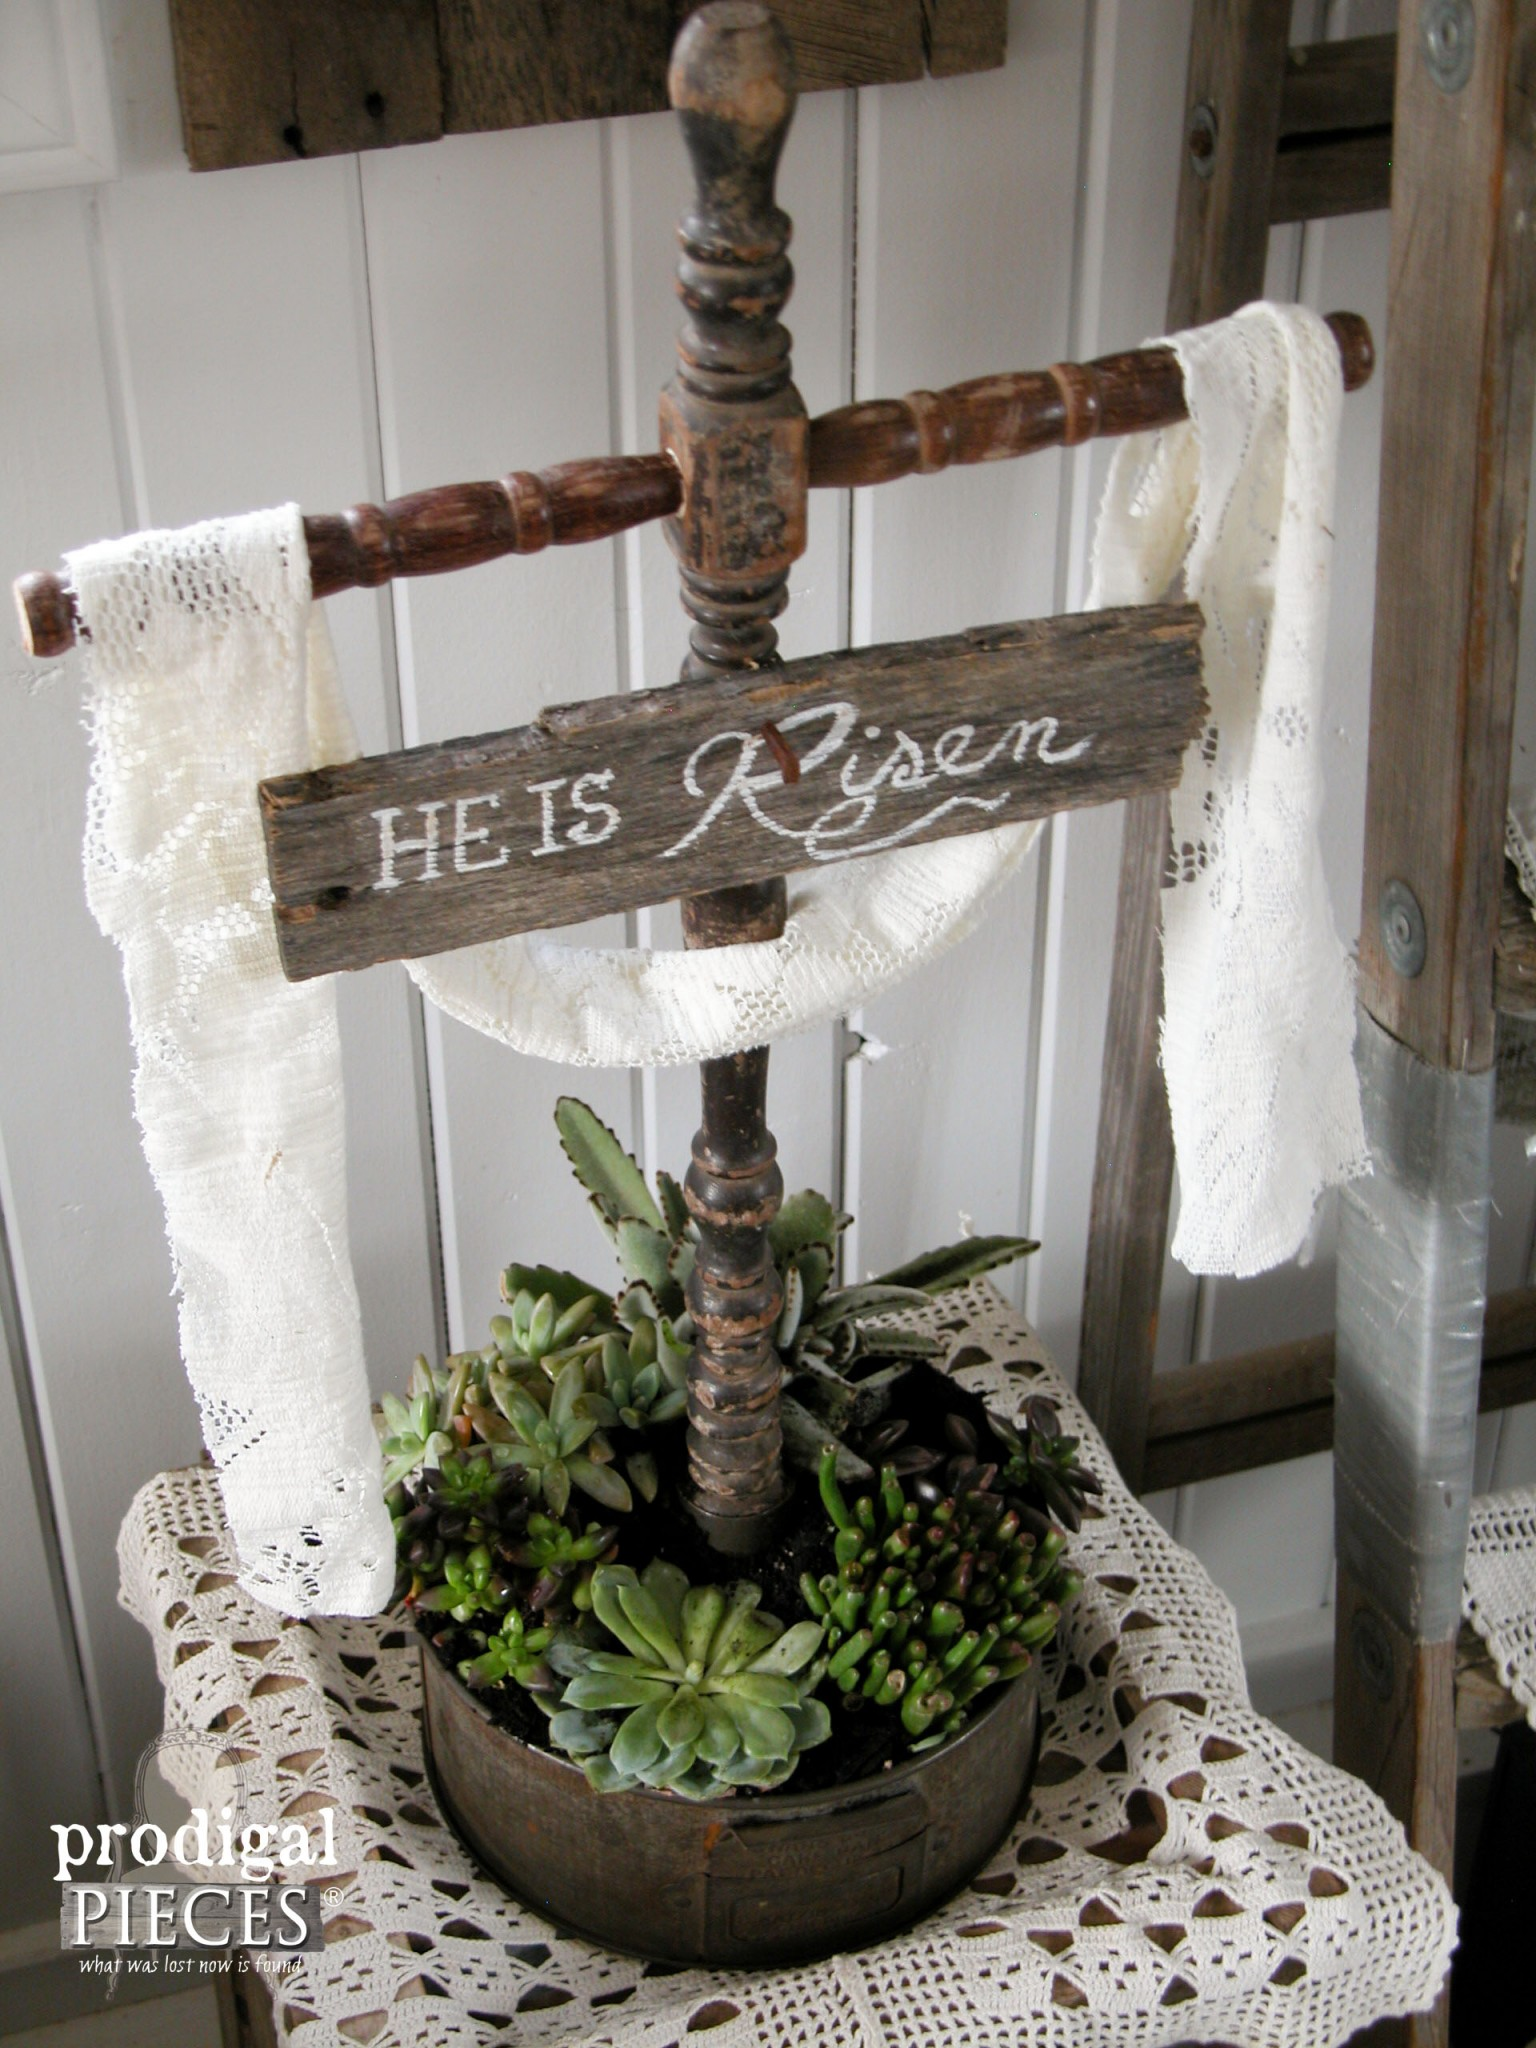 Reclaimed Vintage Finds Become Easter Cross Succulent Planter by Prodigal Pieces | www.prodigalpieces.com